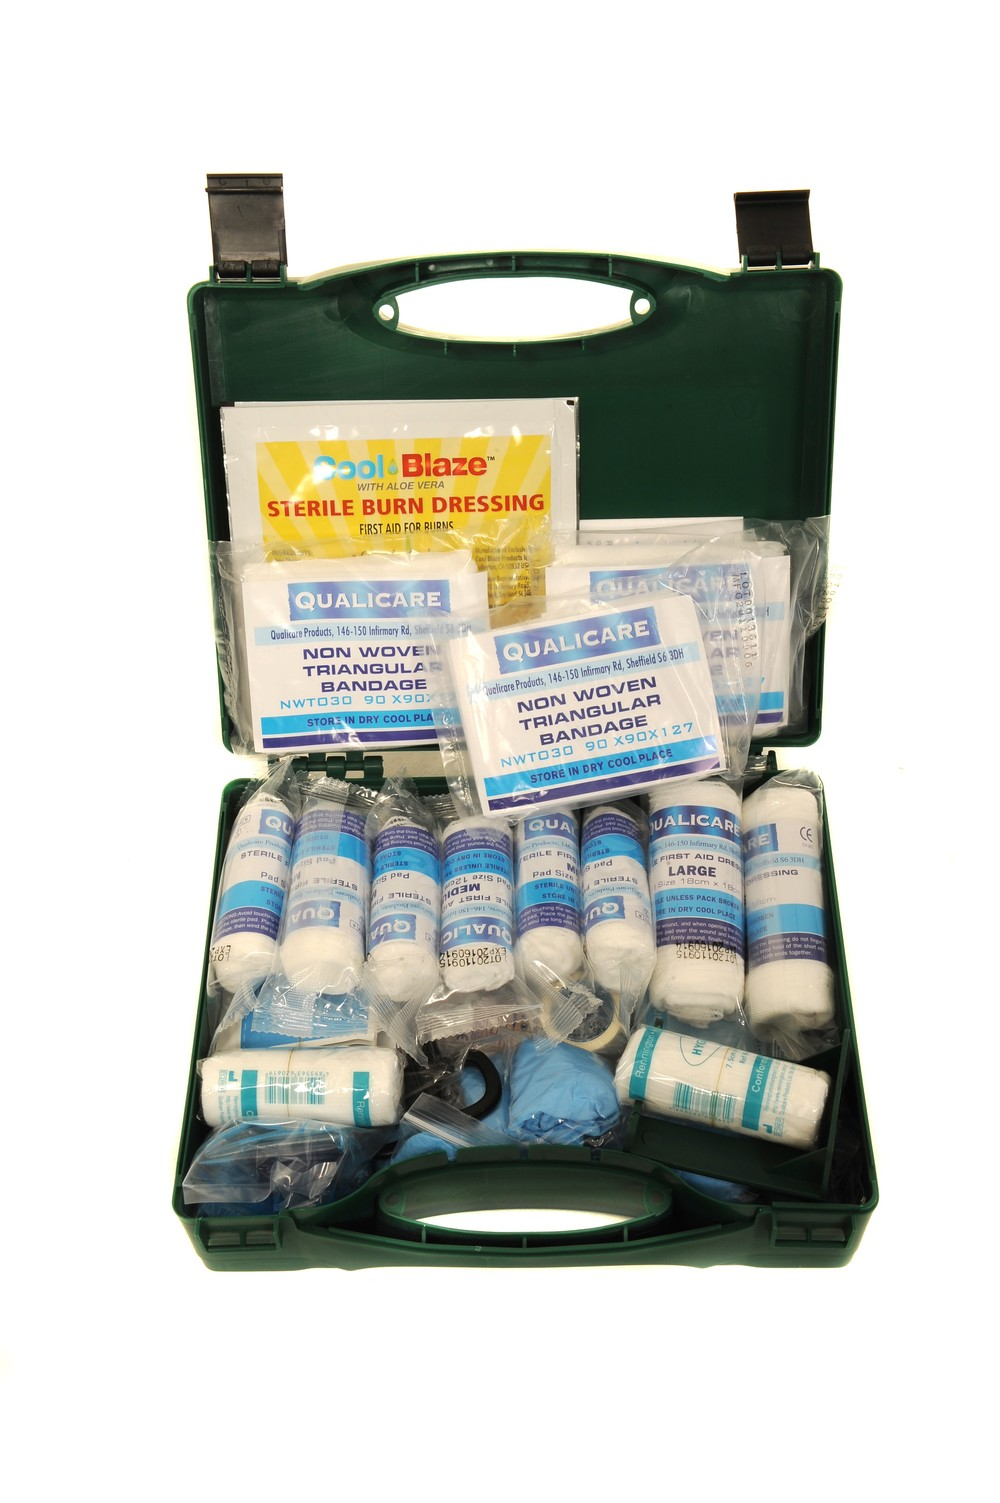 BS 8599-1 Compliant Catering First Aid Kits and Kitchen Kits